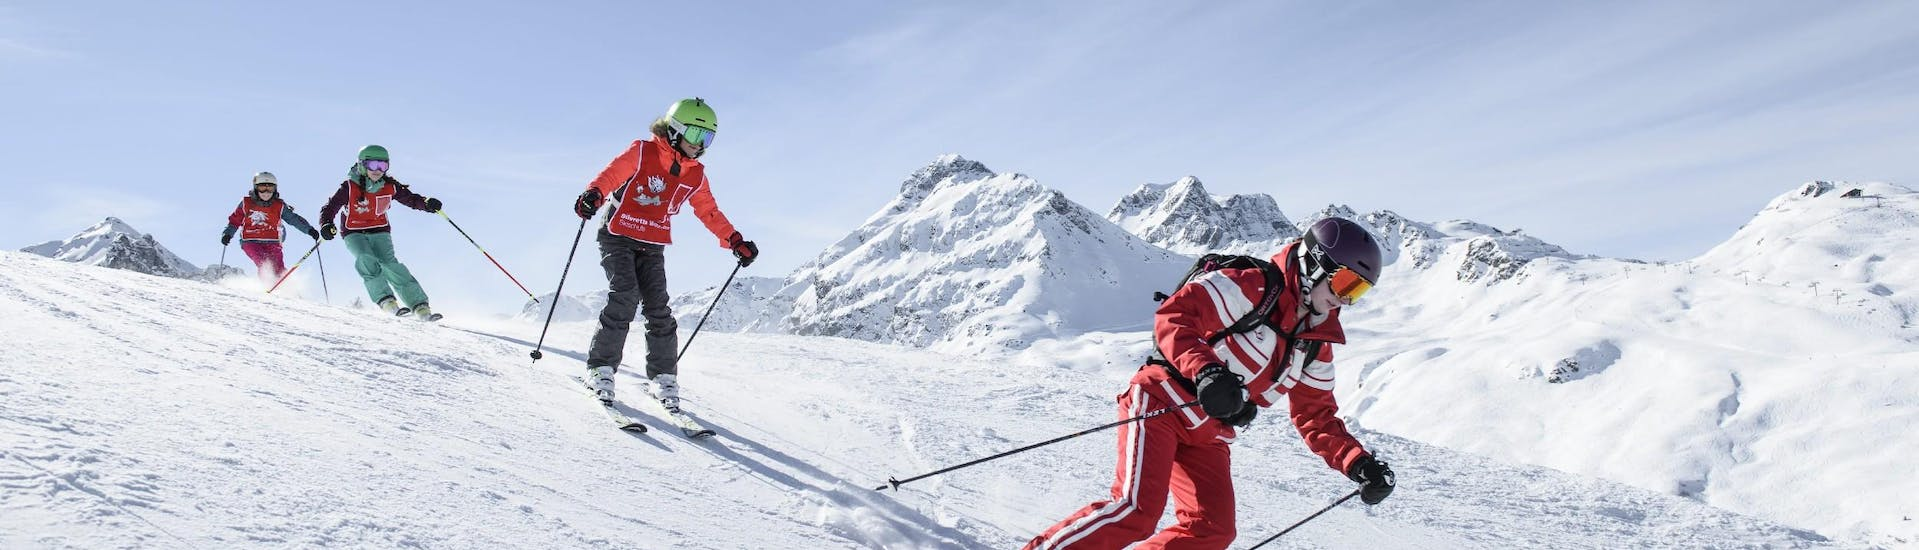 During their Kids Ski Lessons (from 5 y.) for Skiers with Experience a group of children is exploring the slopes of Silvretta Montafon alongside their experienced ski instructor from Skischule Schruns.